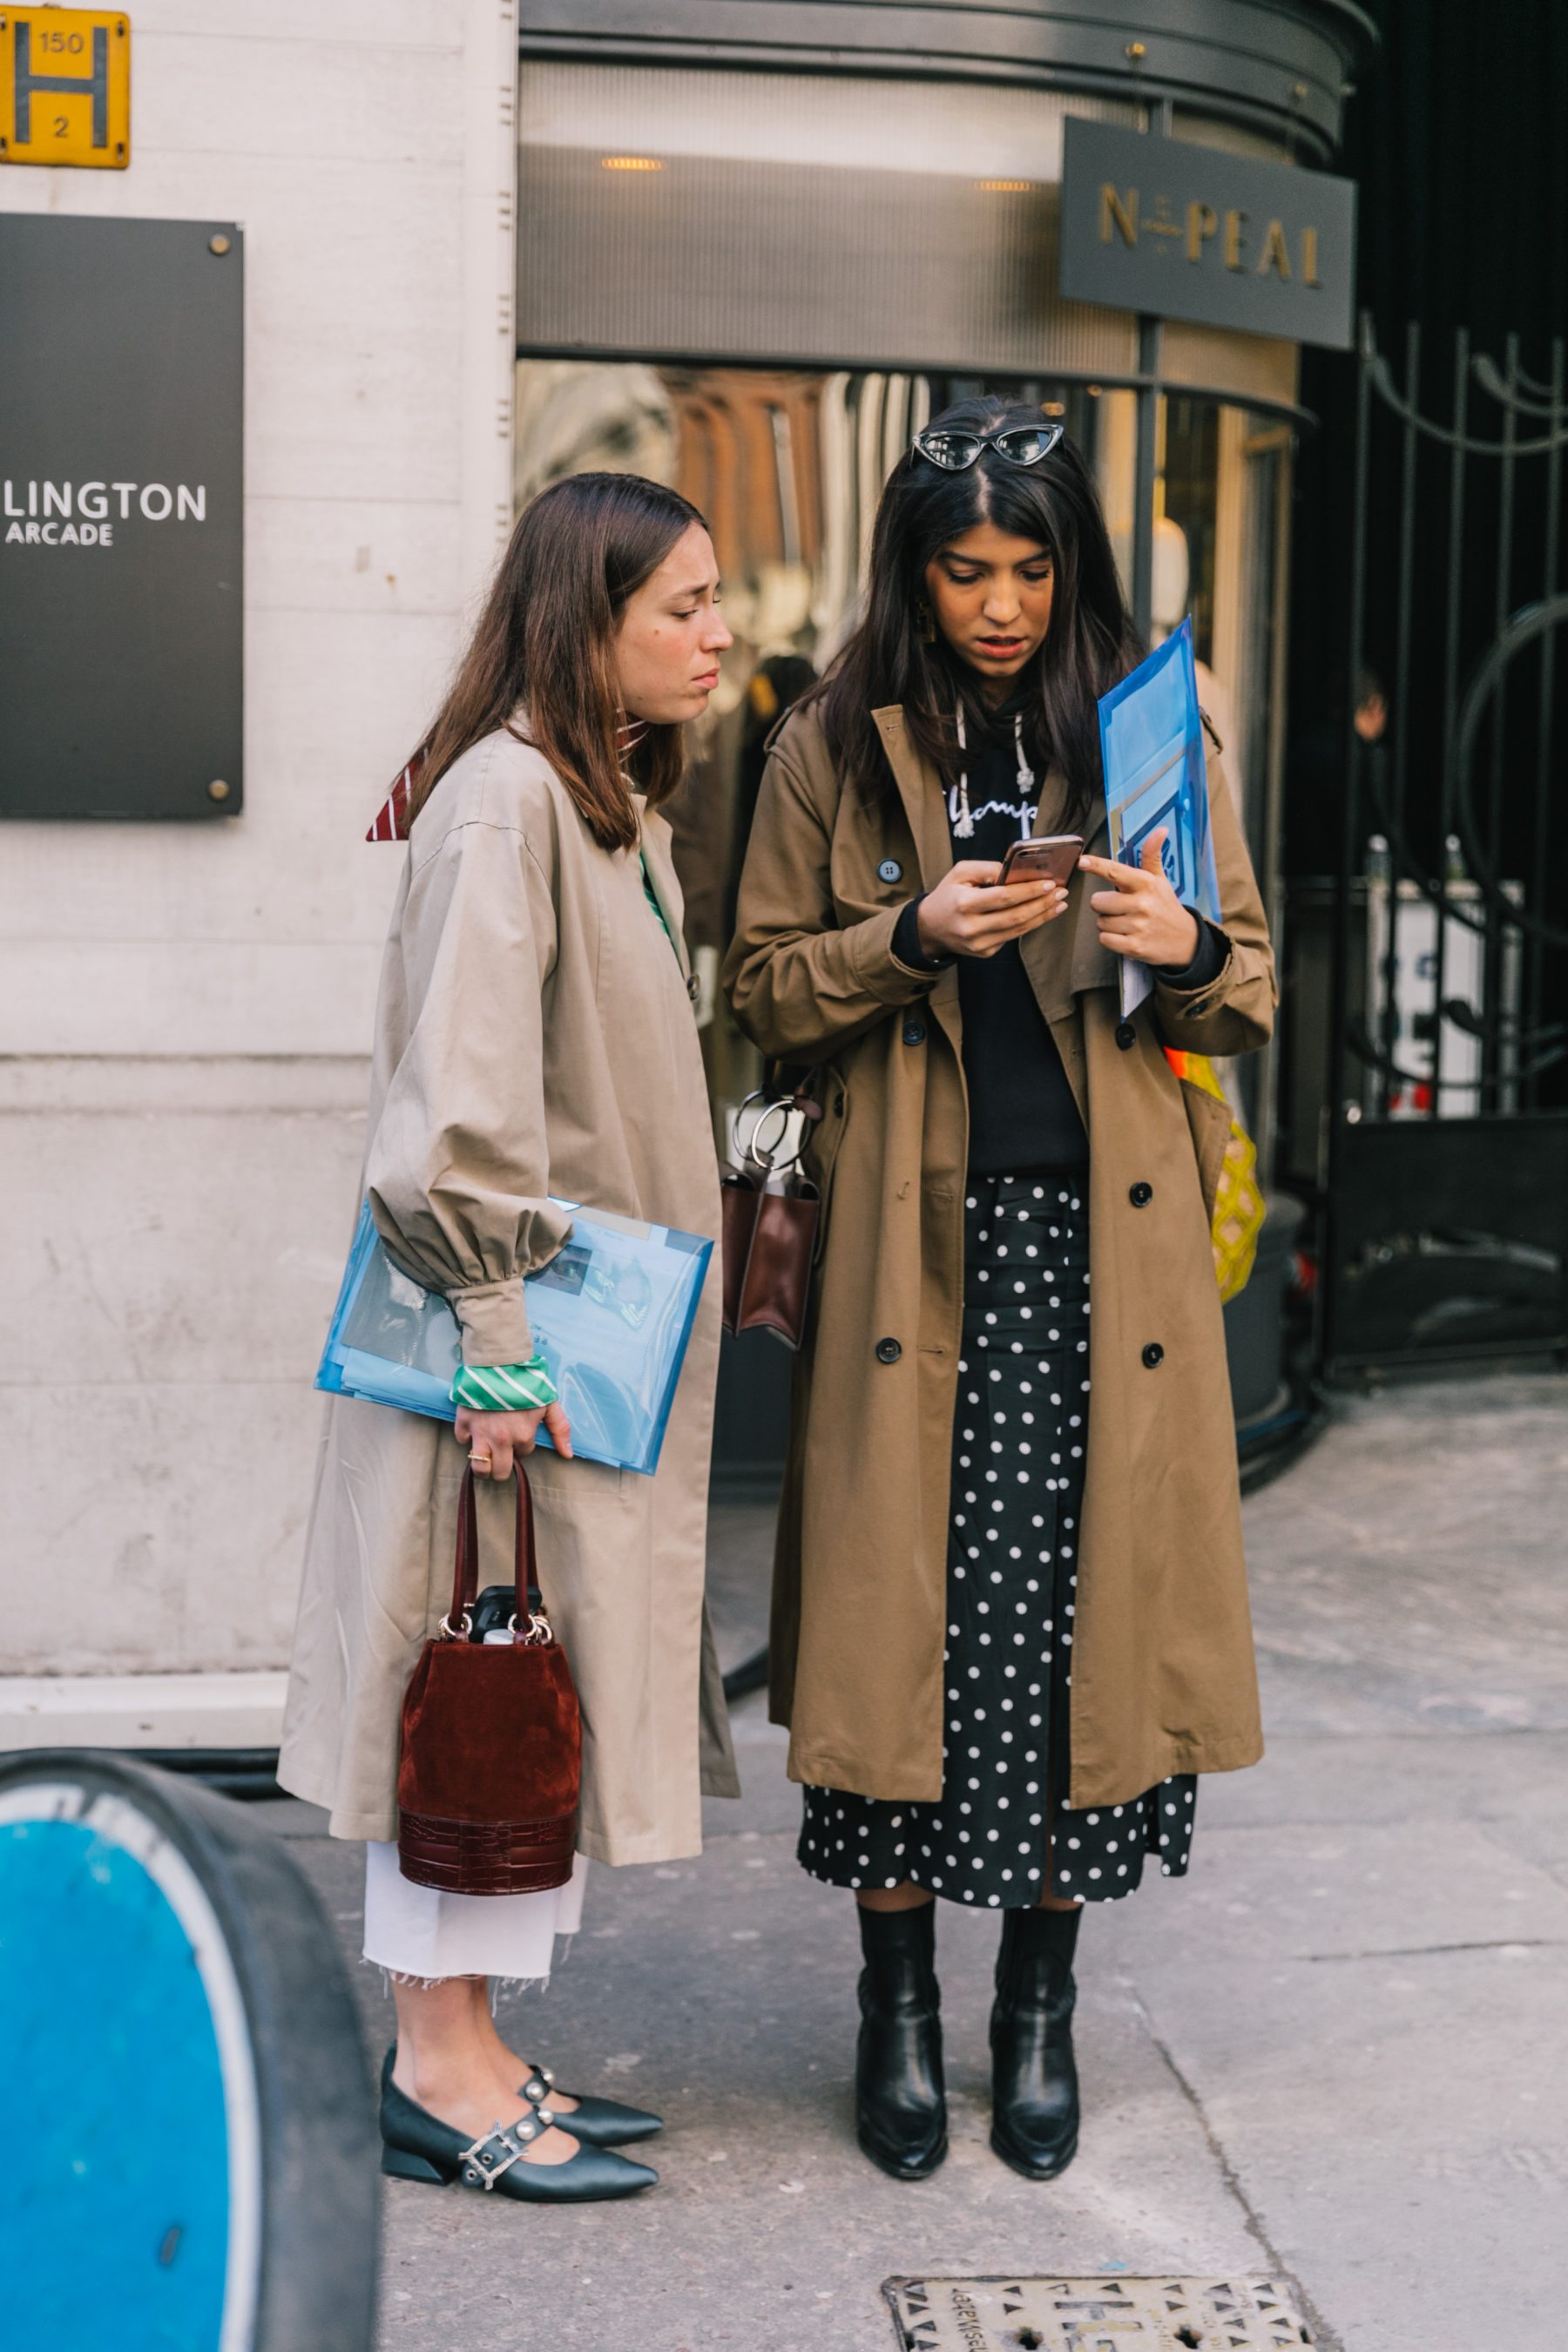 a1ffdb9e4034 Take a note from these looks below and feel free to peruse the shopping  round up at the end of the post with some of our favorite pieces we're  coveting for ...